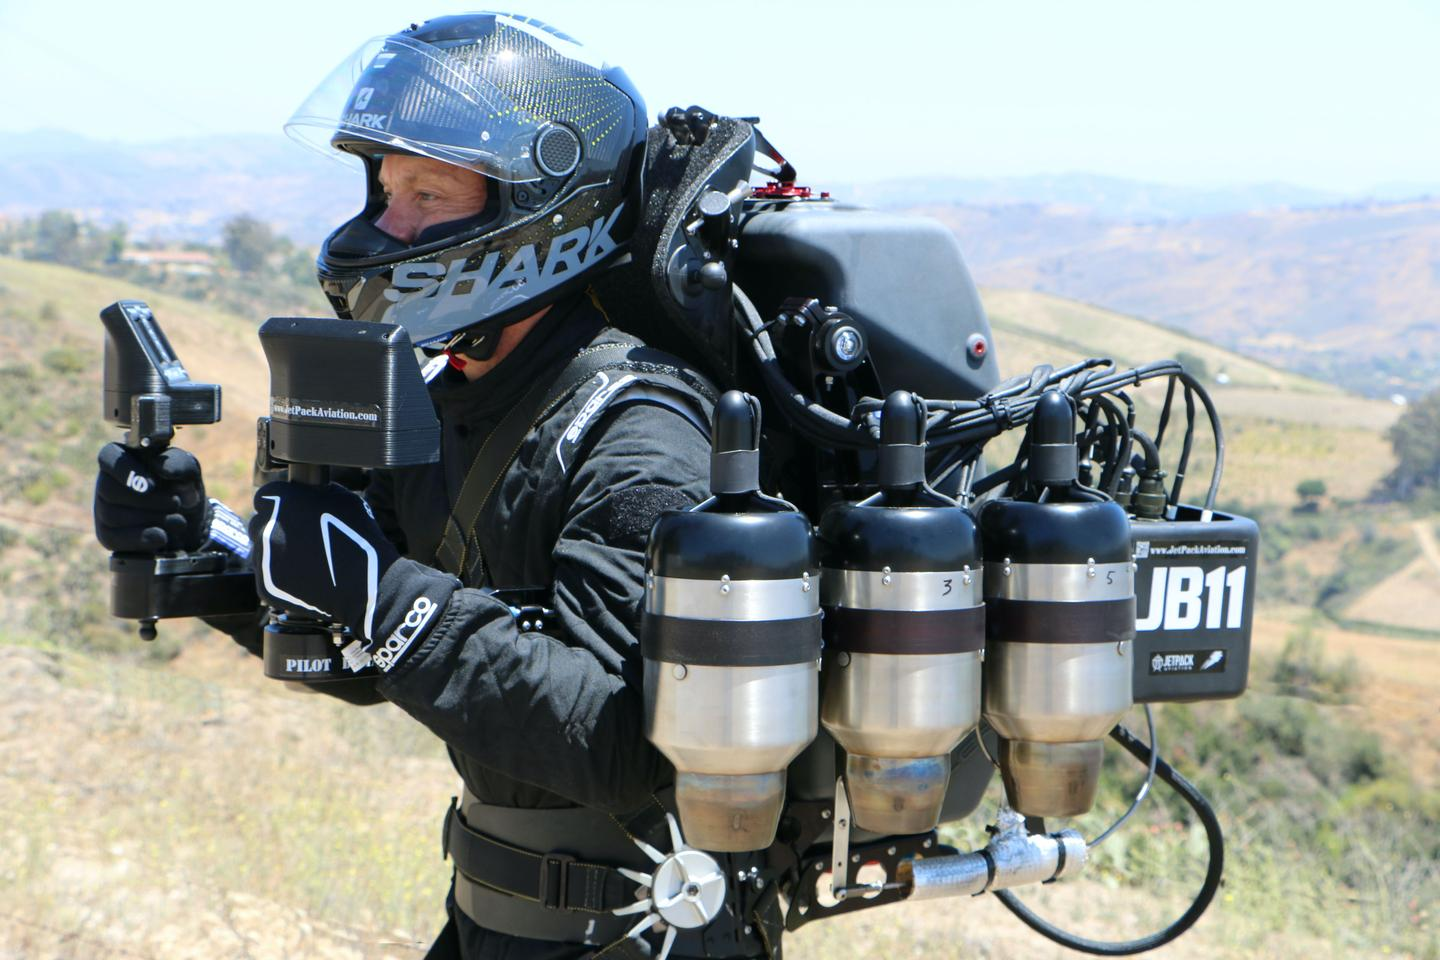 The JB-11 jetpack, a six-turbine monster from JetPack Aviation, which has sold two of a classified JB-12 model developed from this platform